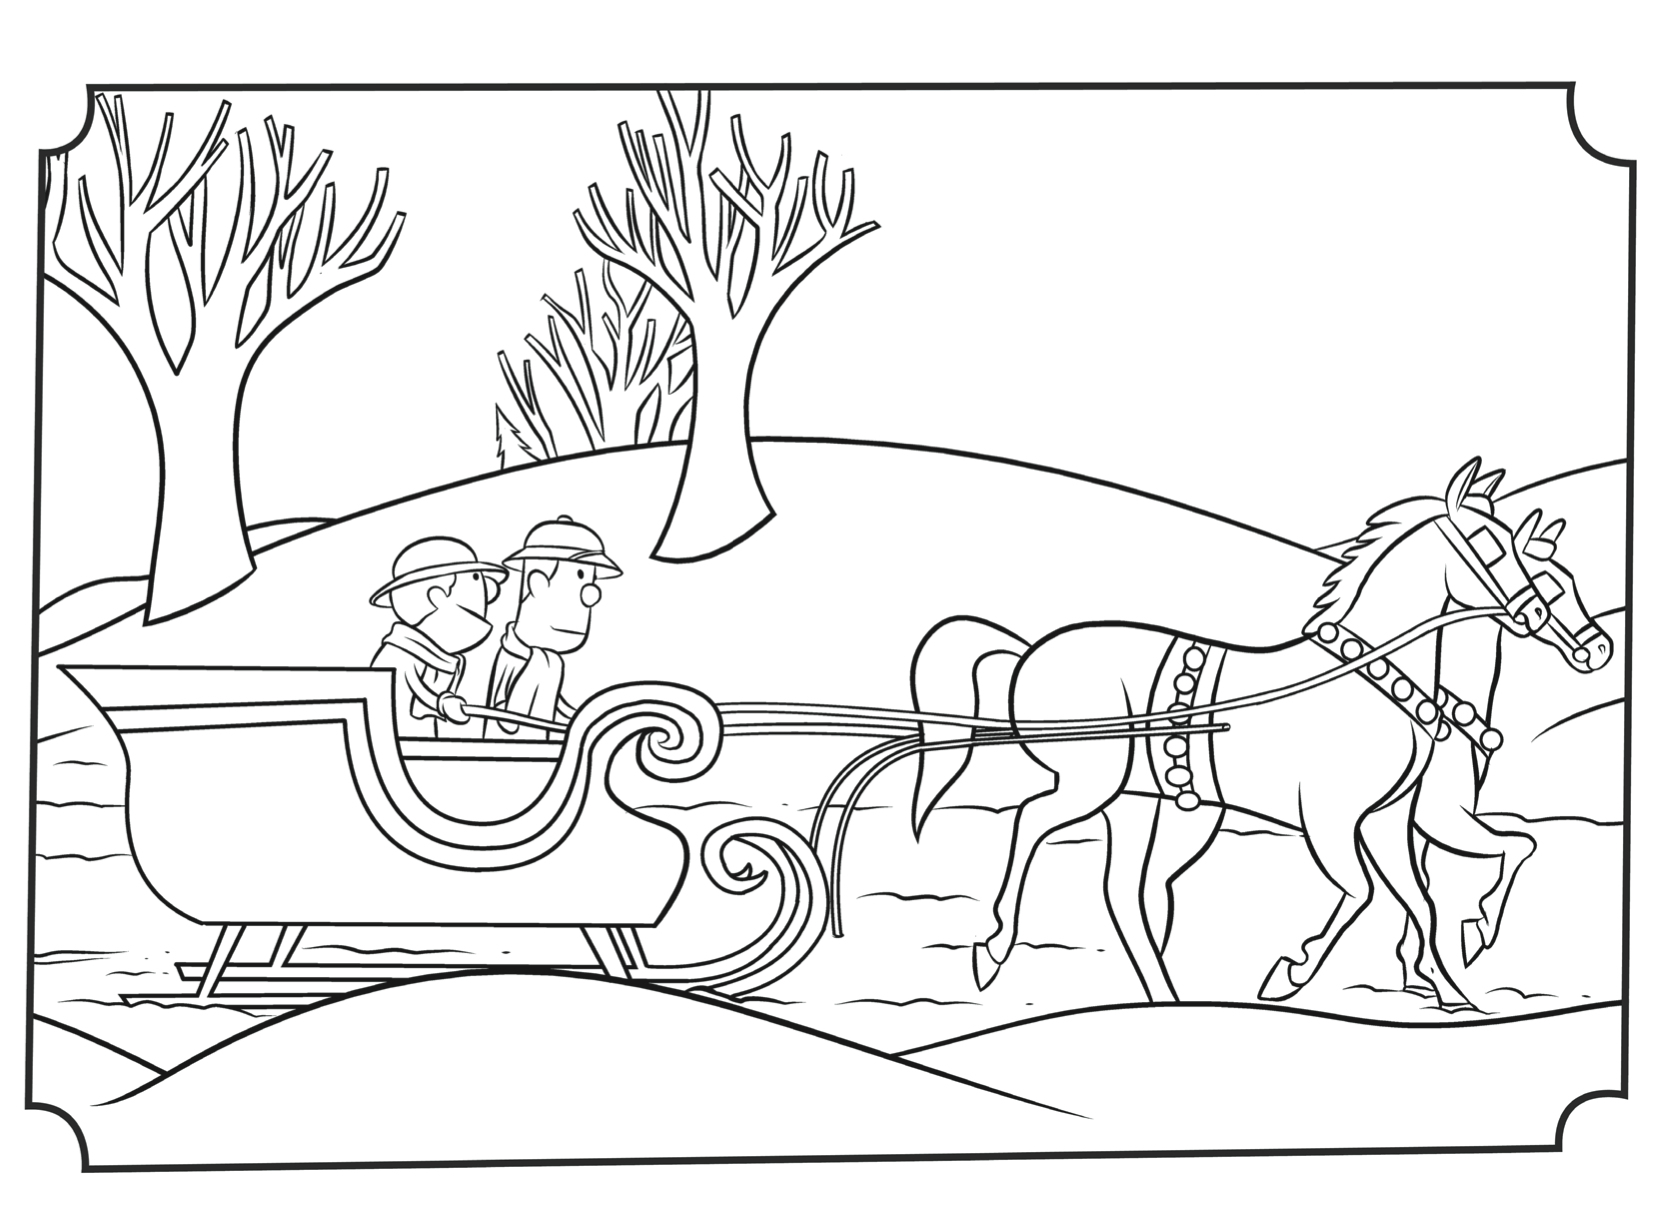 jellytelly coloring pages - photo#13